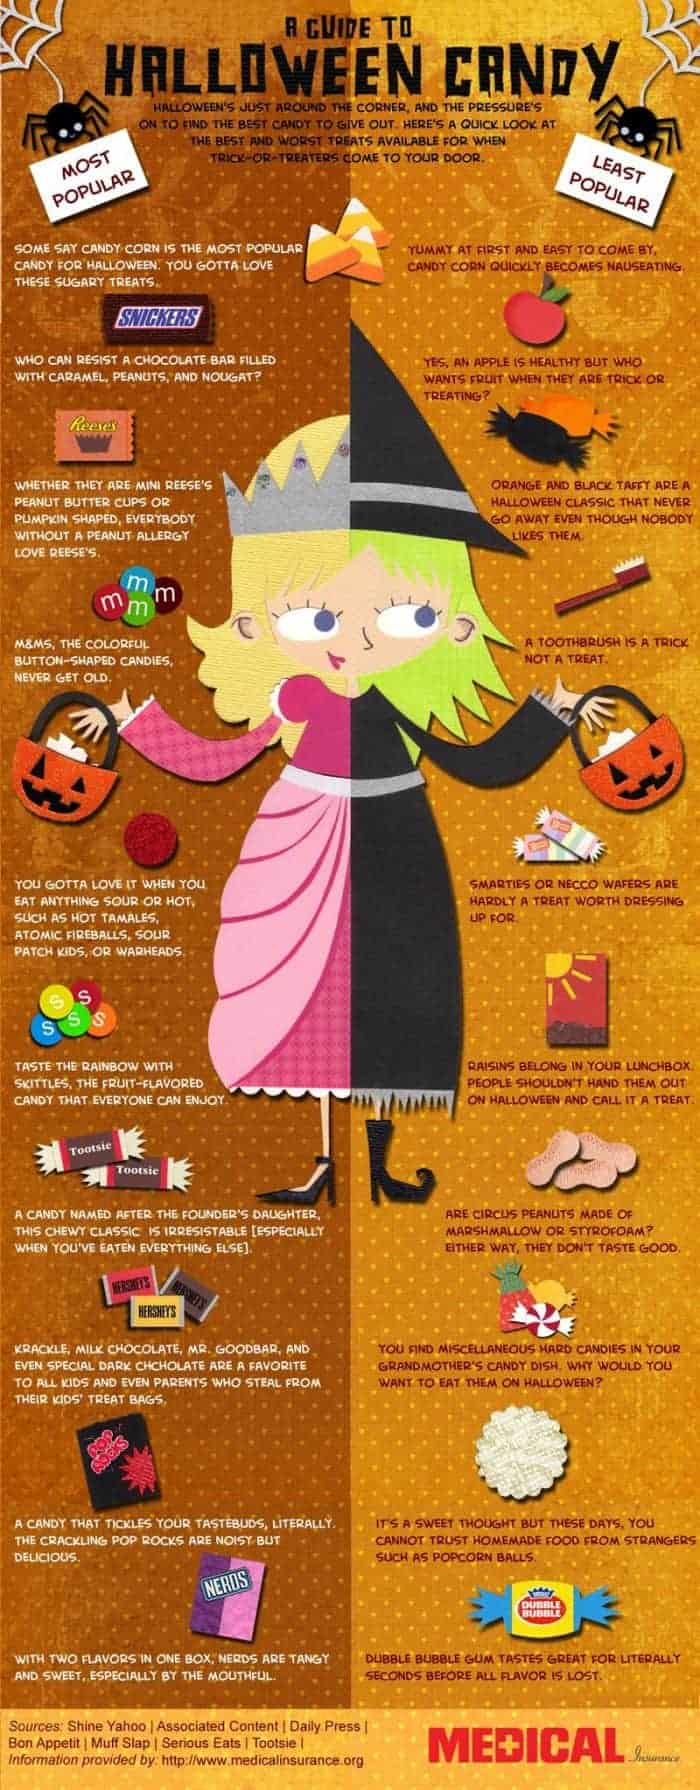 A Guide To Halloween Candy